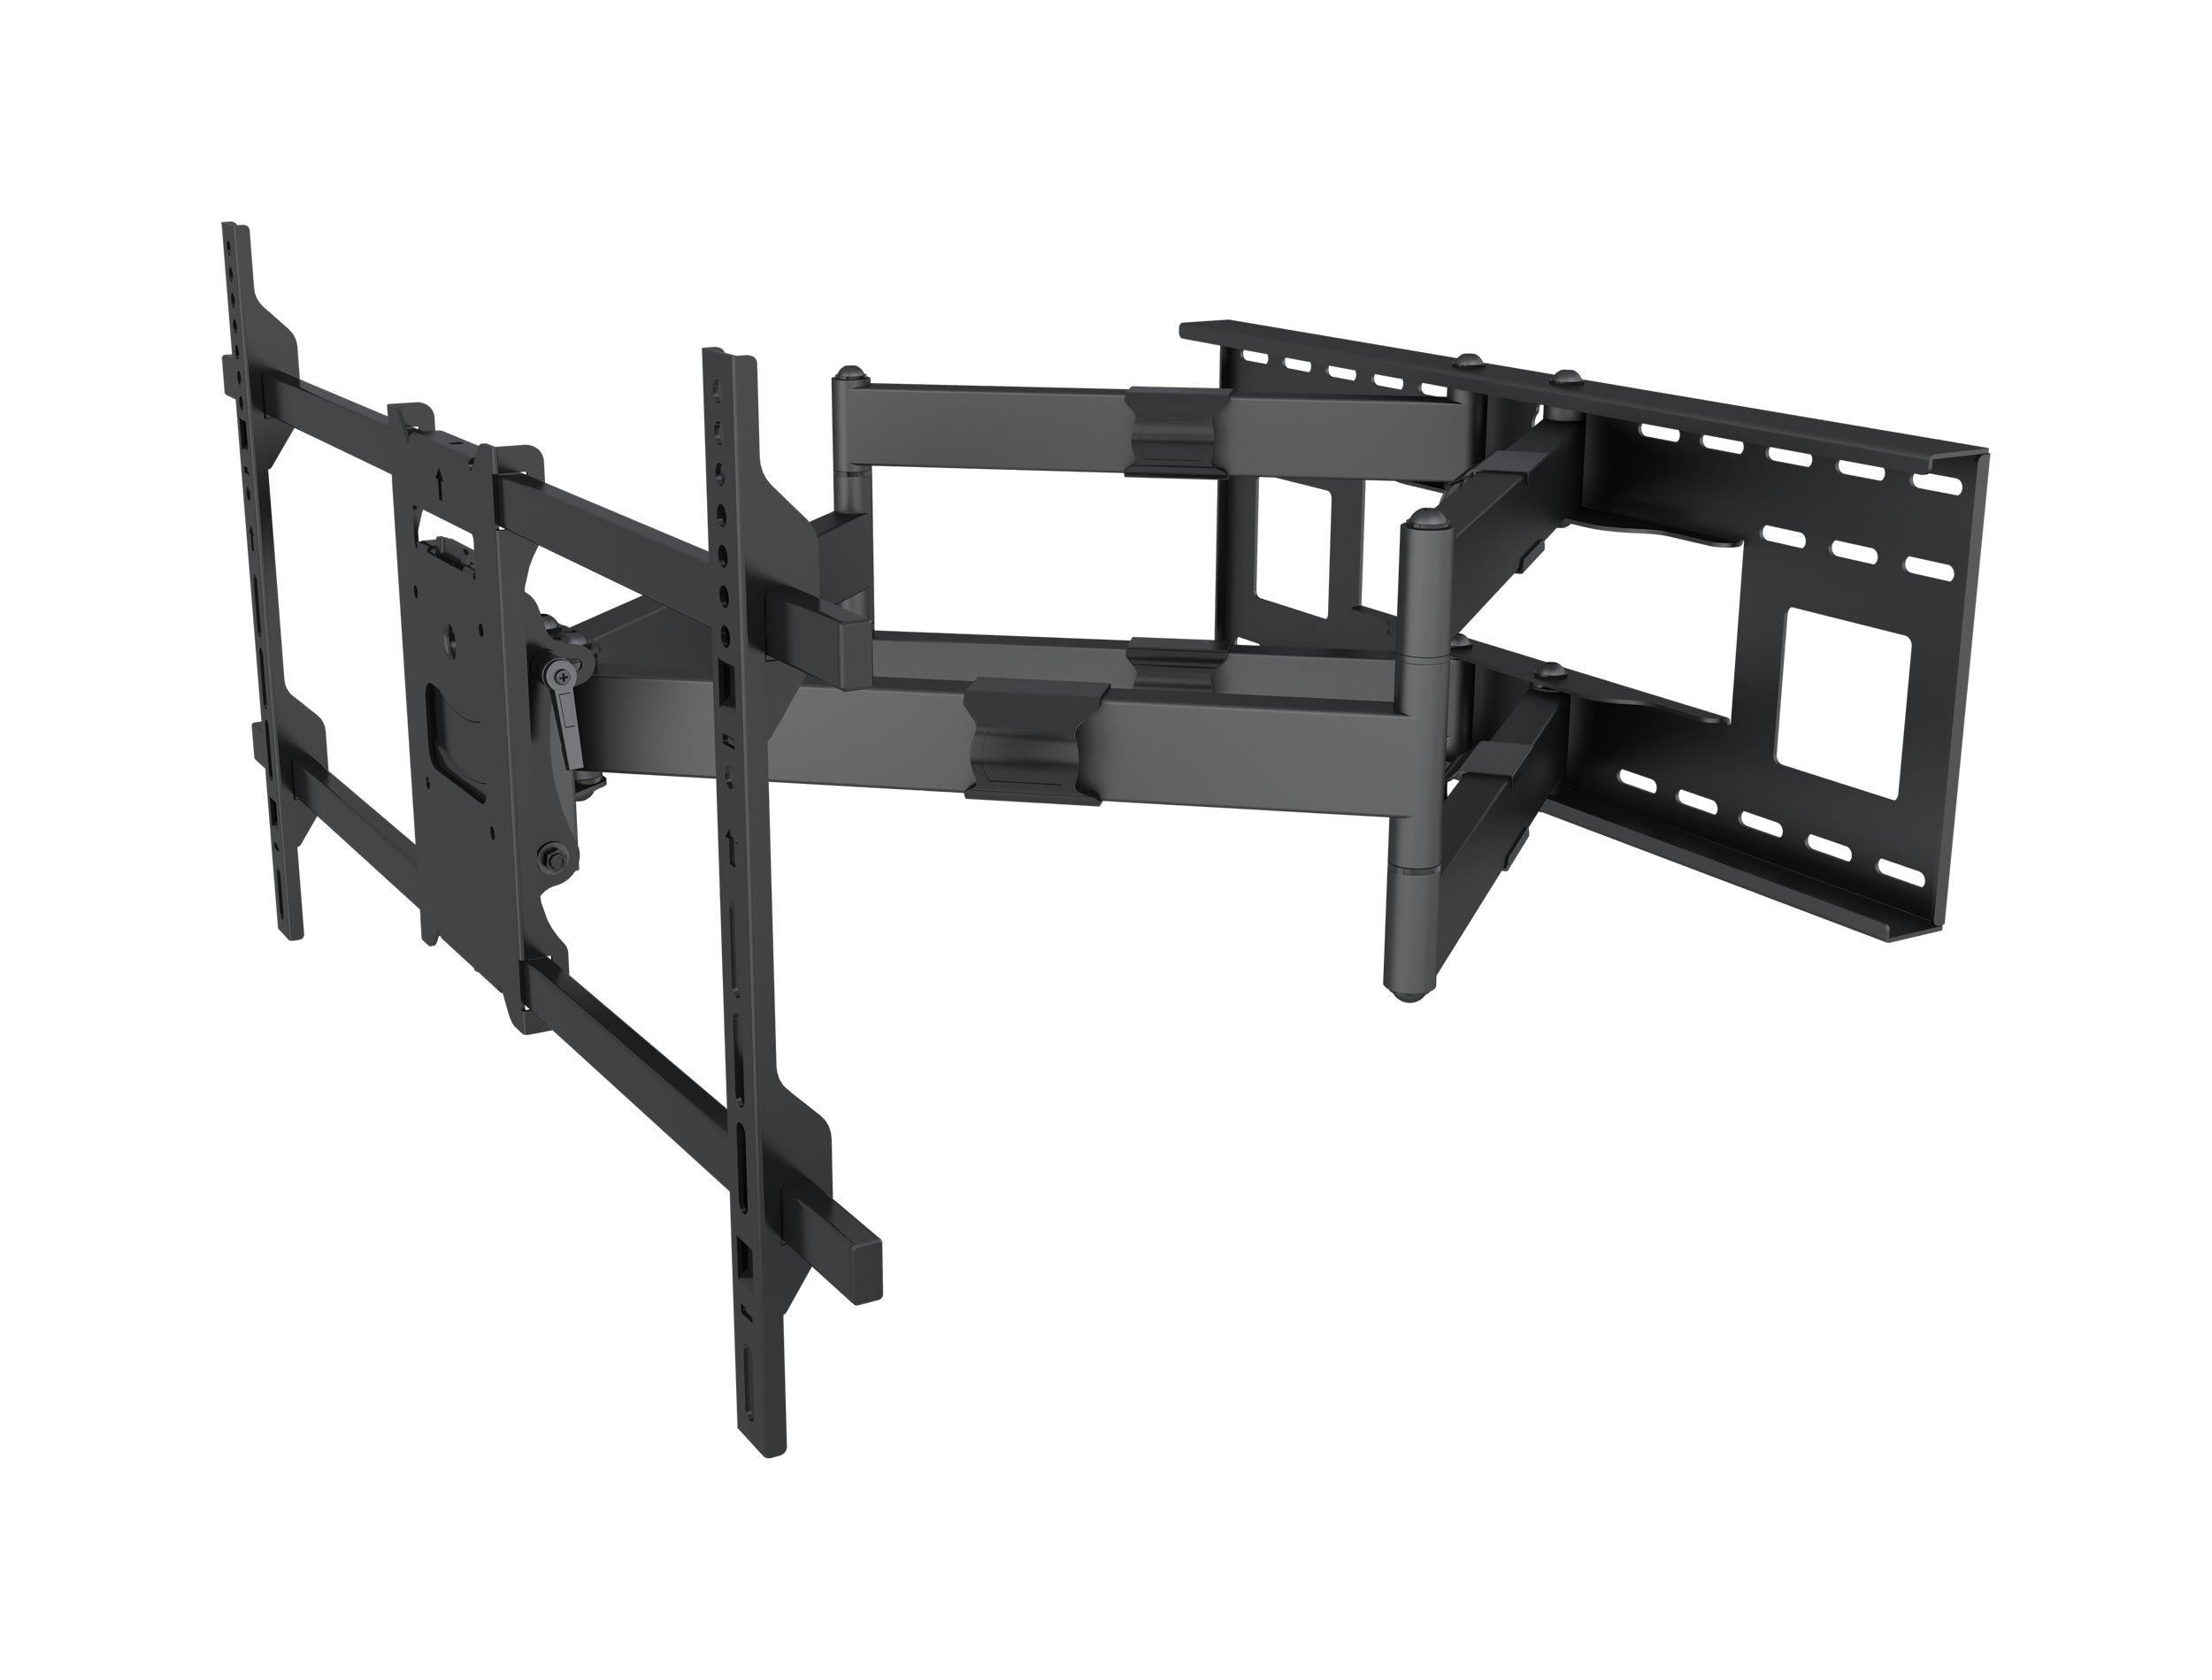 Full motion Flat LCD LED TV / Panels Wall Mount Bracket for 42-90 inches Screens